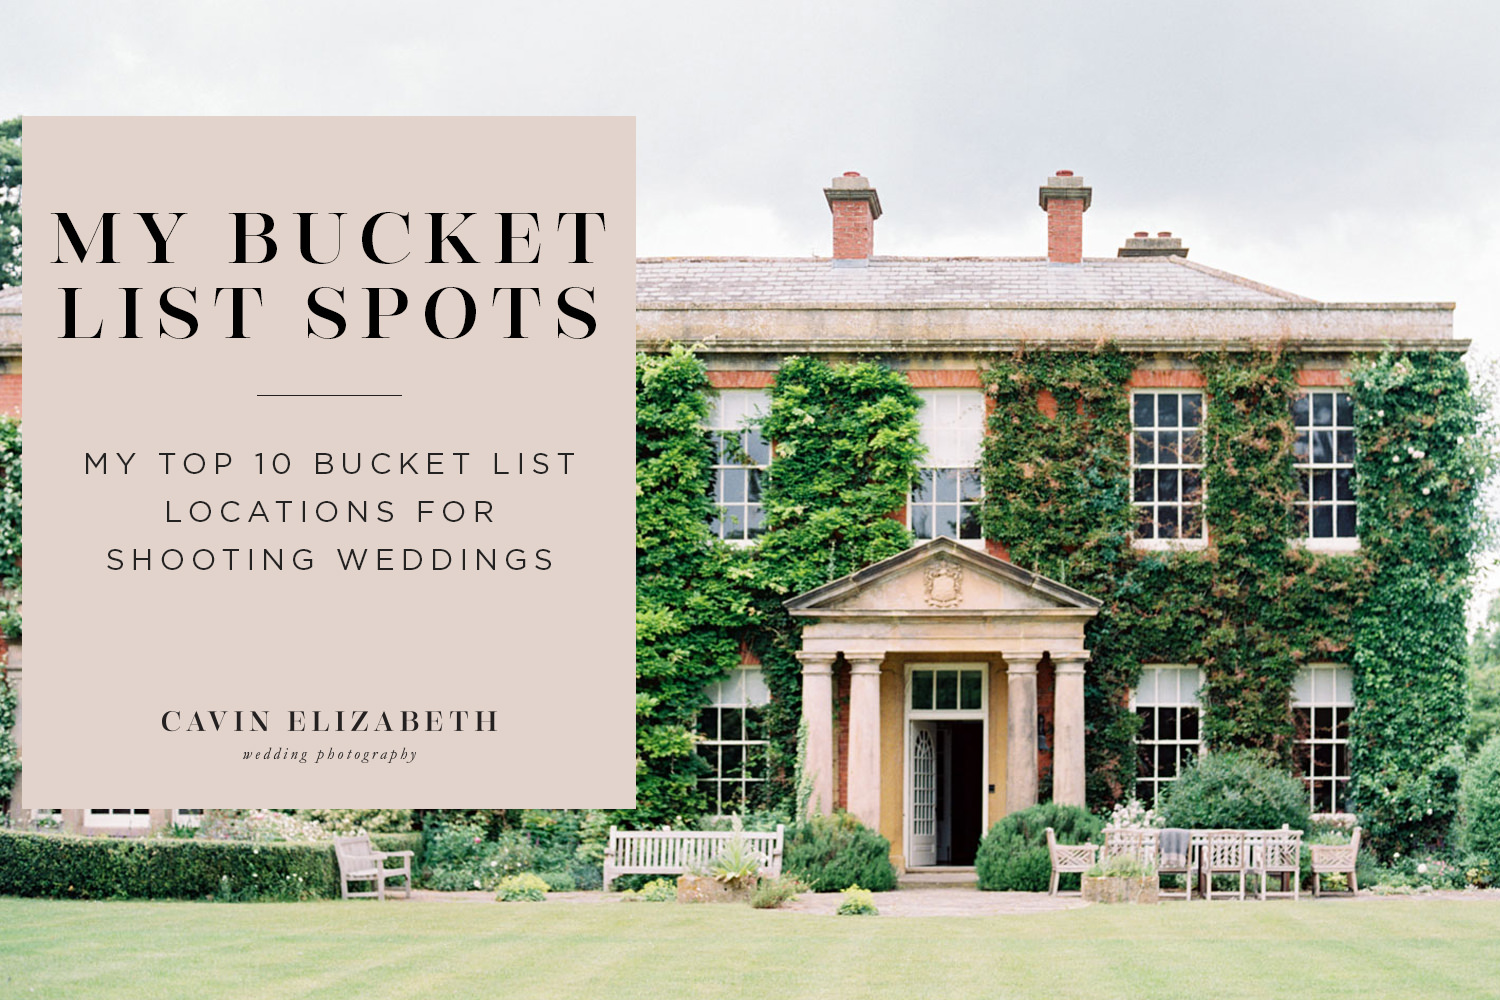 My Top 10 Bucket List Destinations for Photographing Weddings